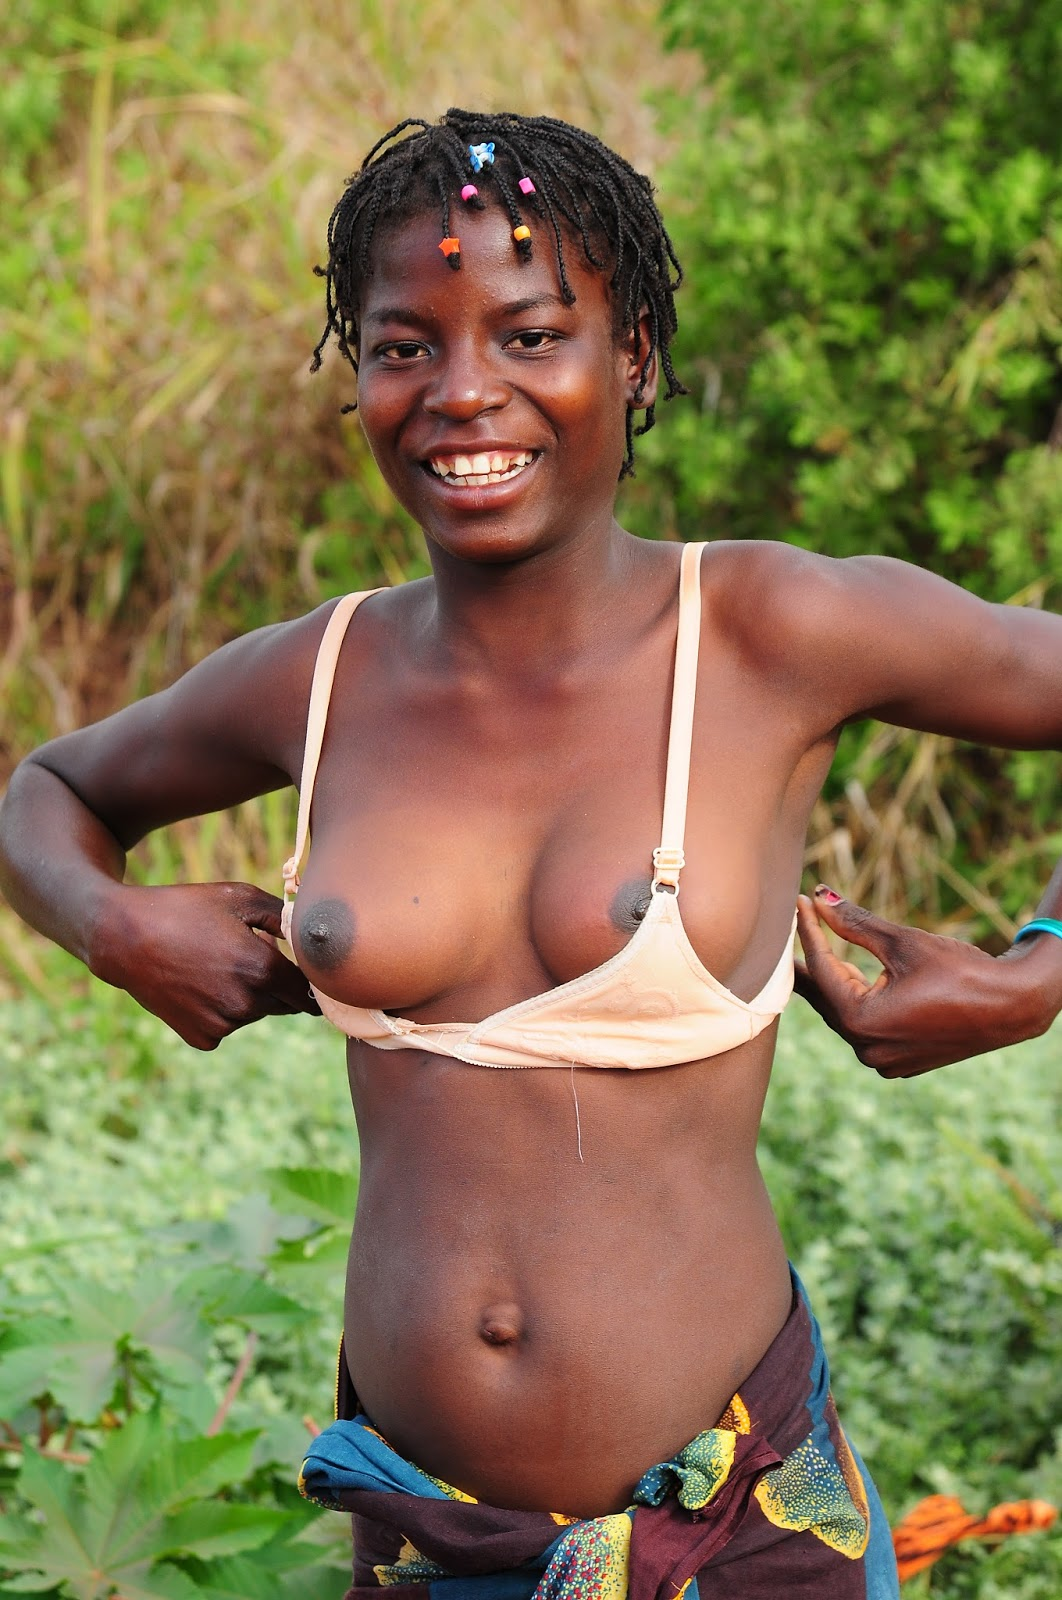 Ebony native girls nude